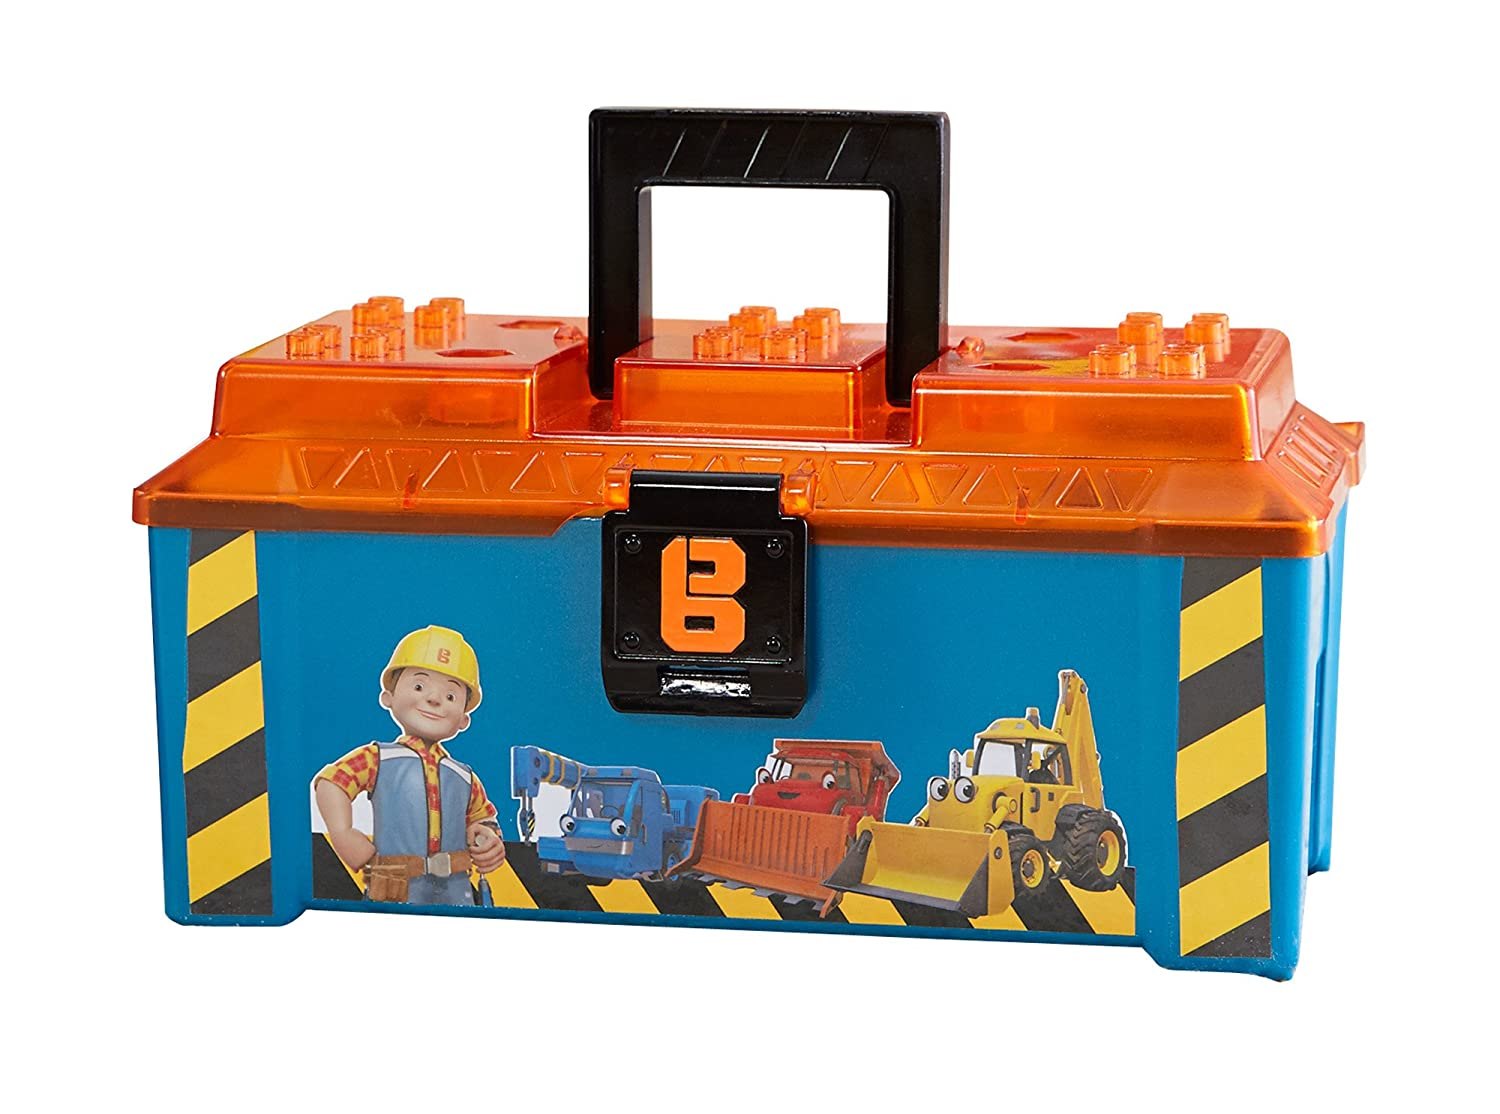 Fisher-Price Bob the Builder Deluxe Tool Box